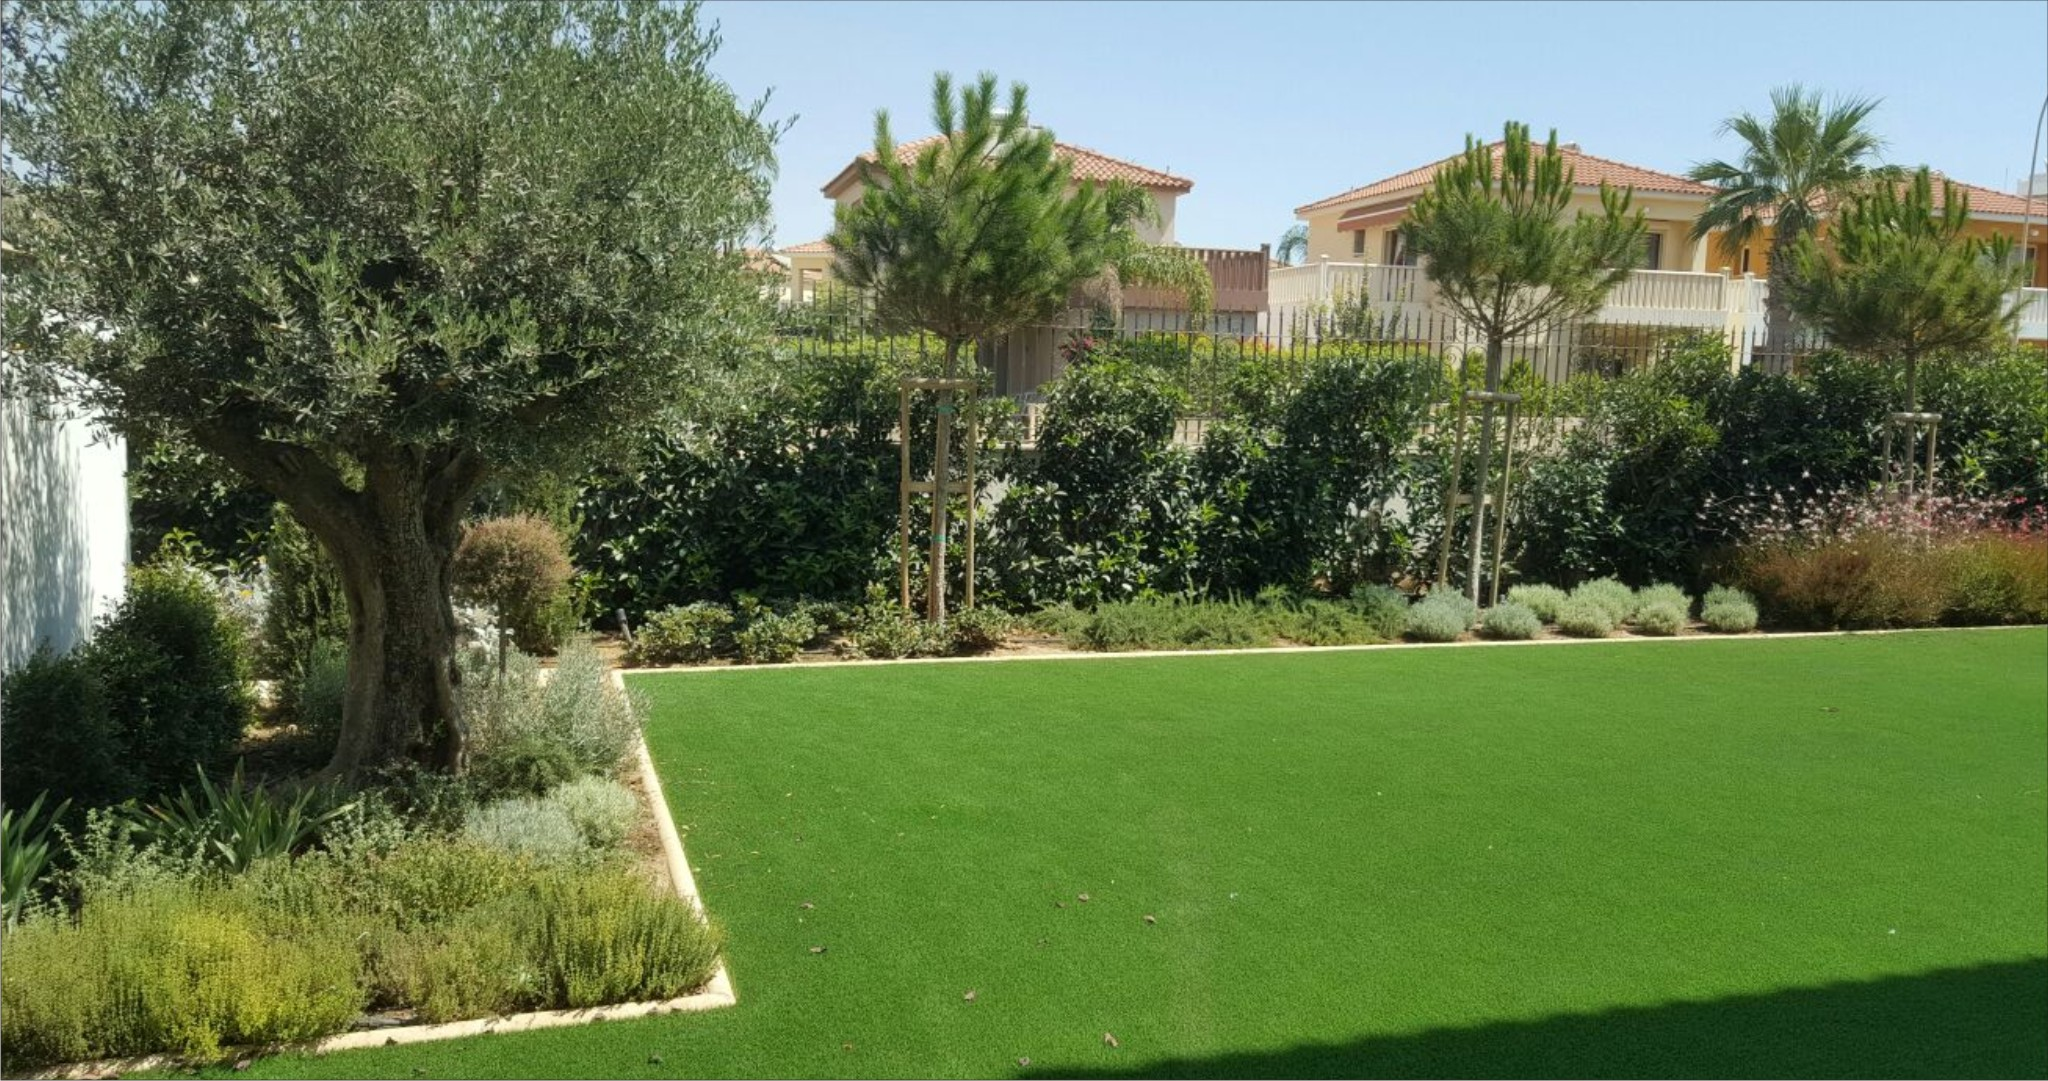 T p green architecture landscape design and consulting for Green garden designs